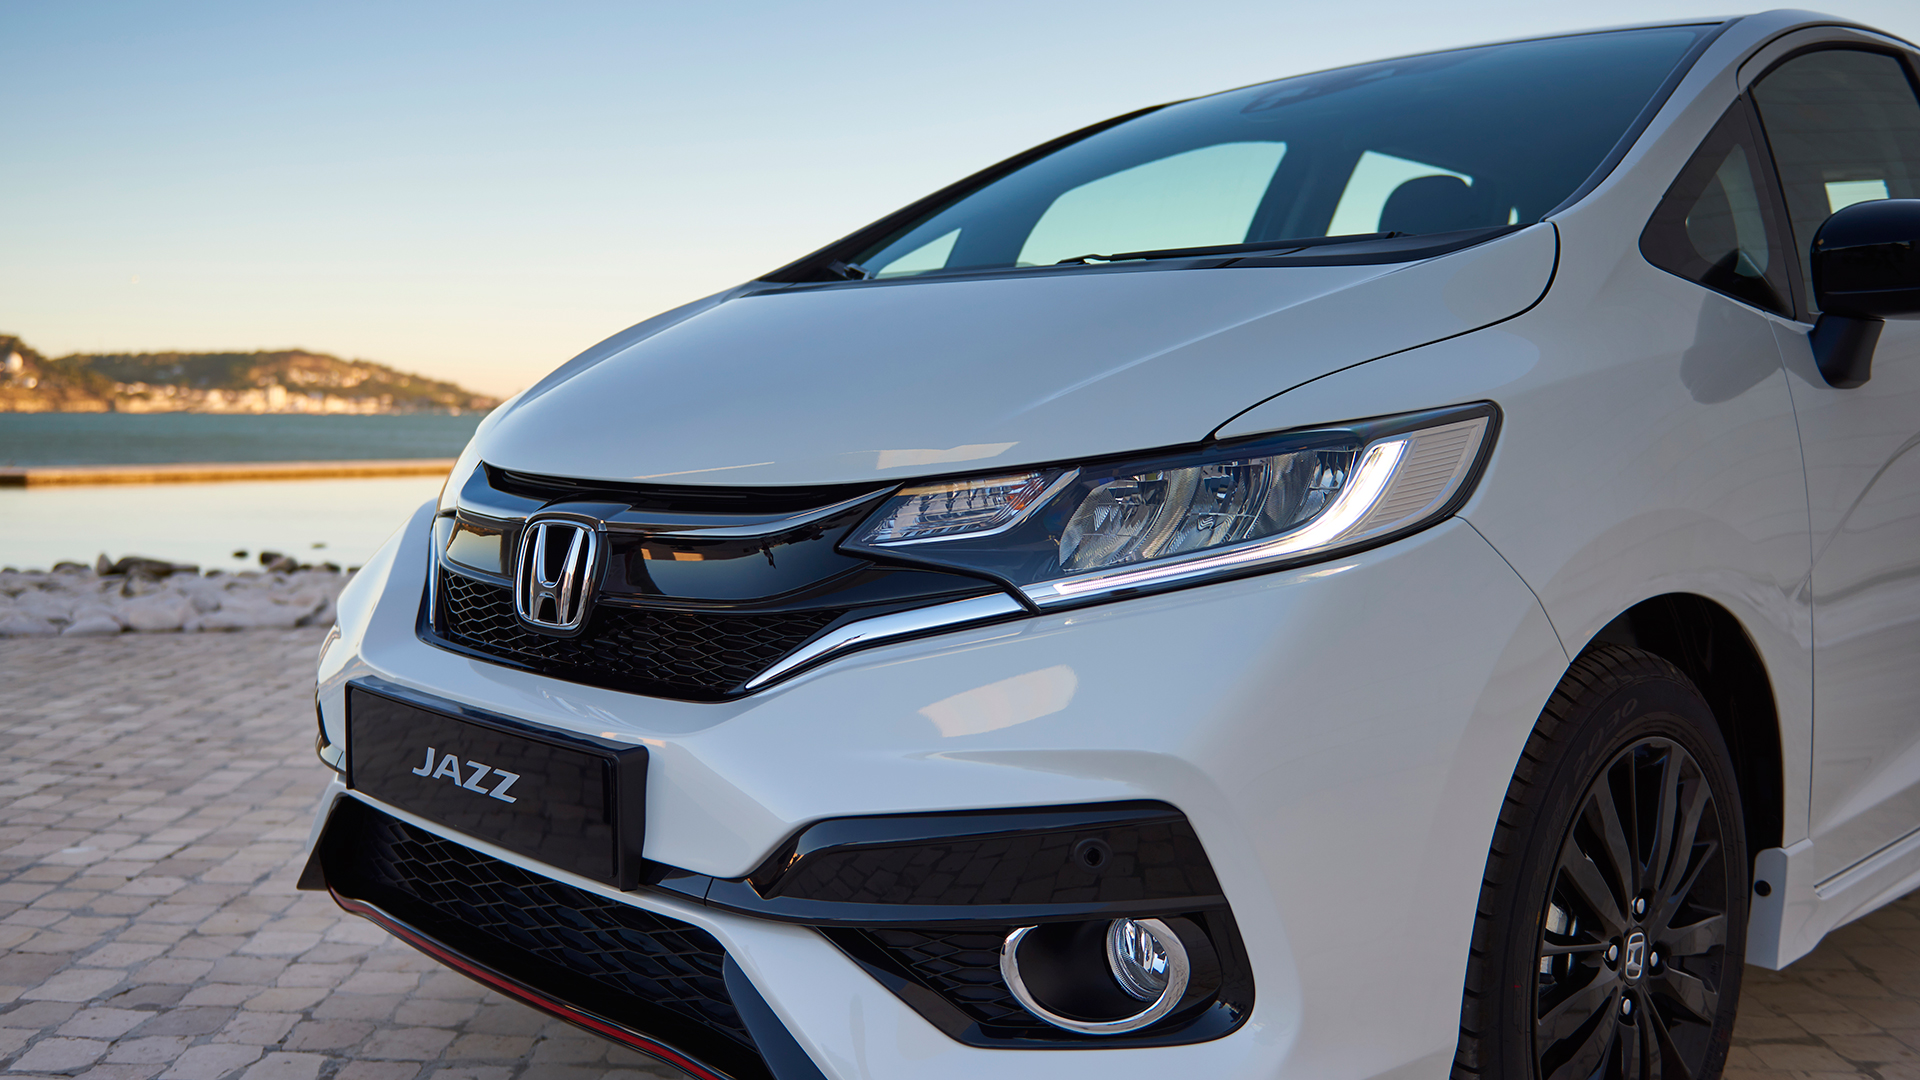 Green Honda Jazz Used Cars For Sale On Auto Trader Uk